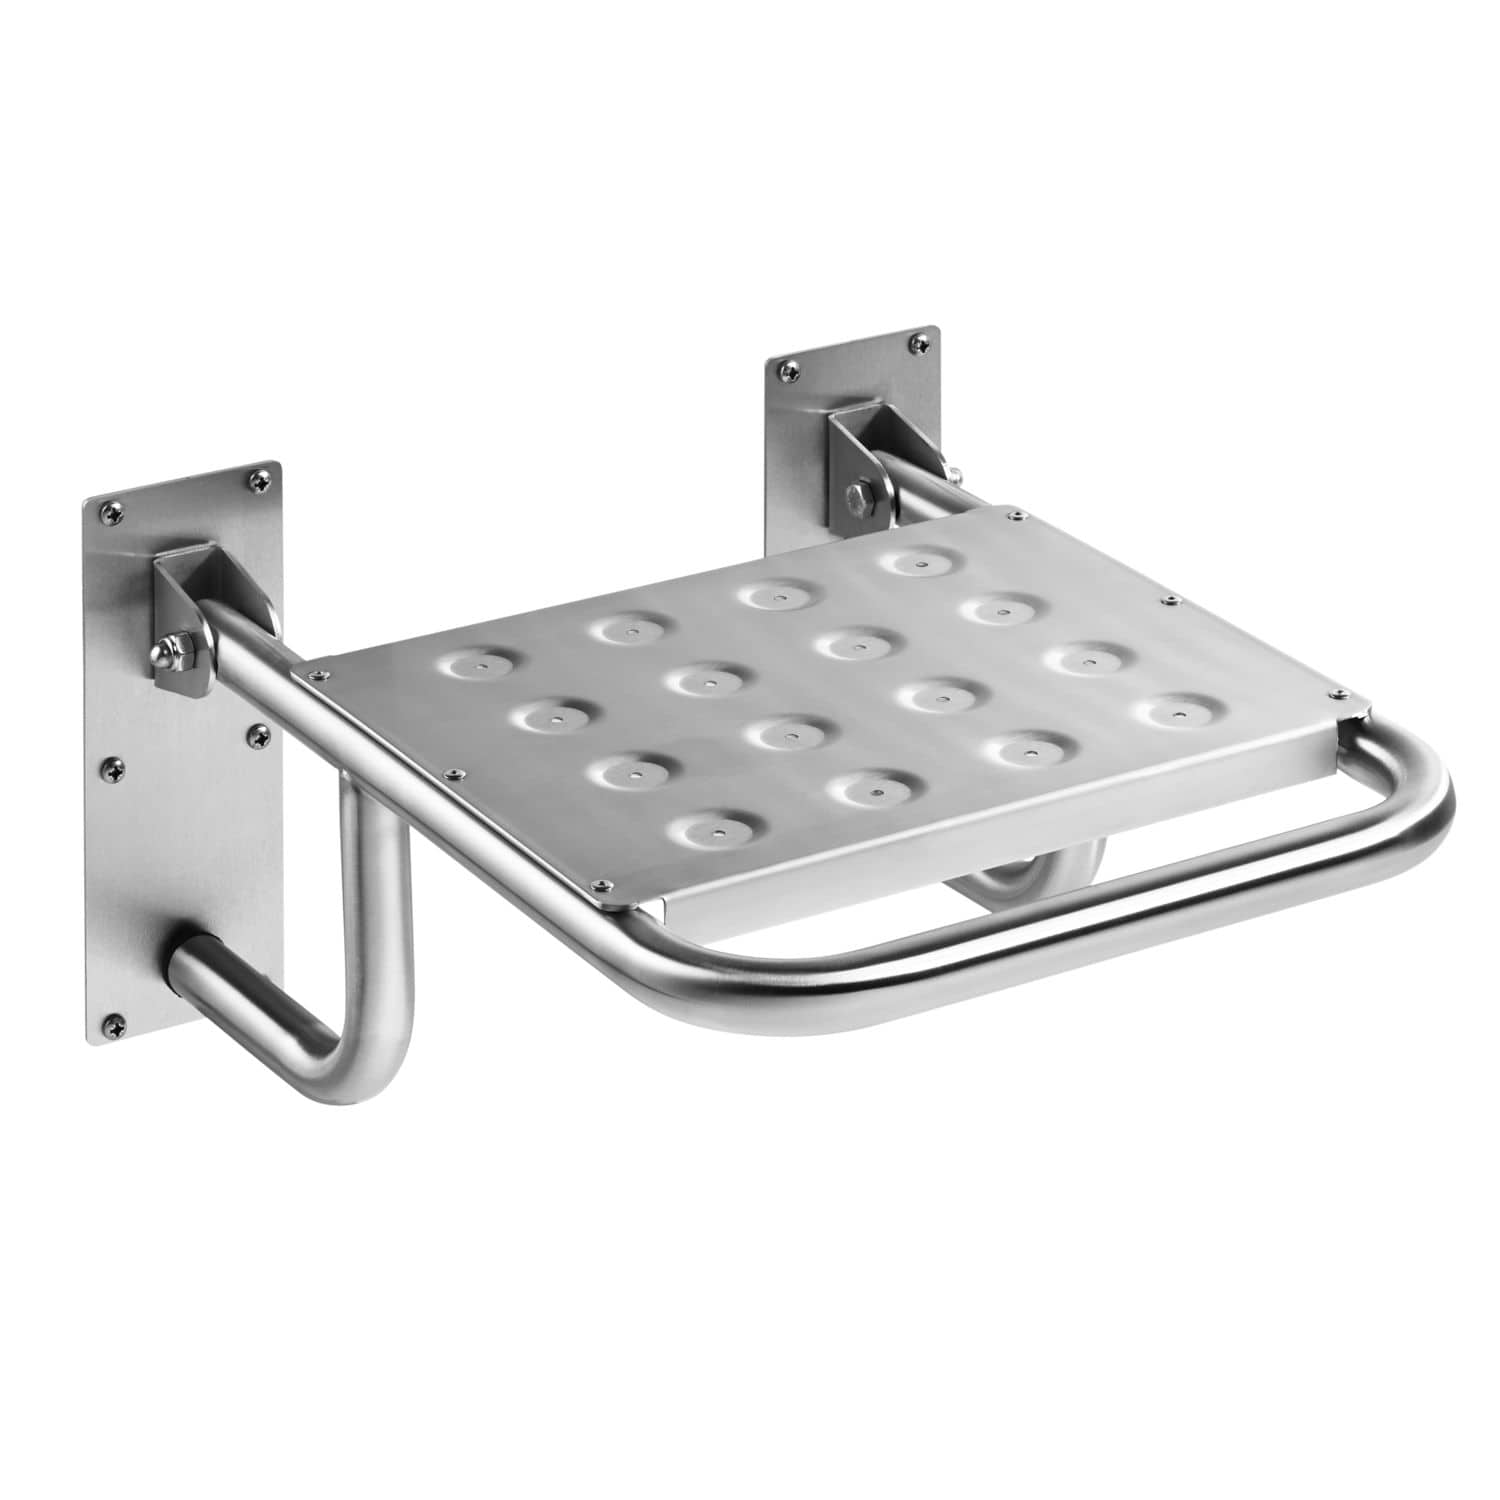 Folding shower seat / wall-mounted / stainless steel / commercial ...